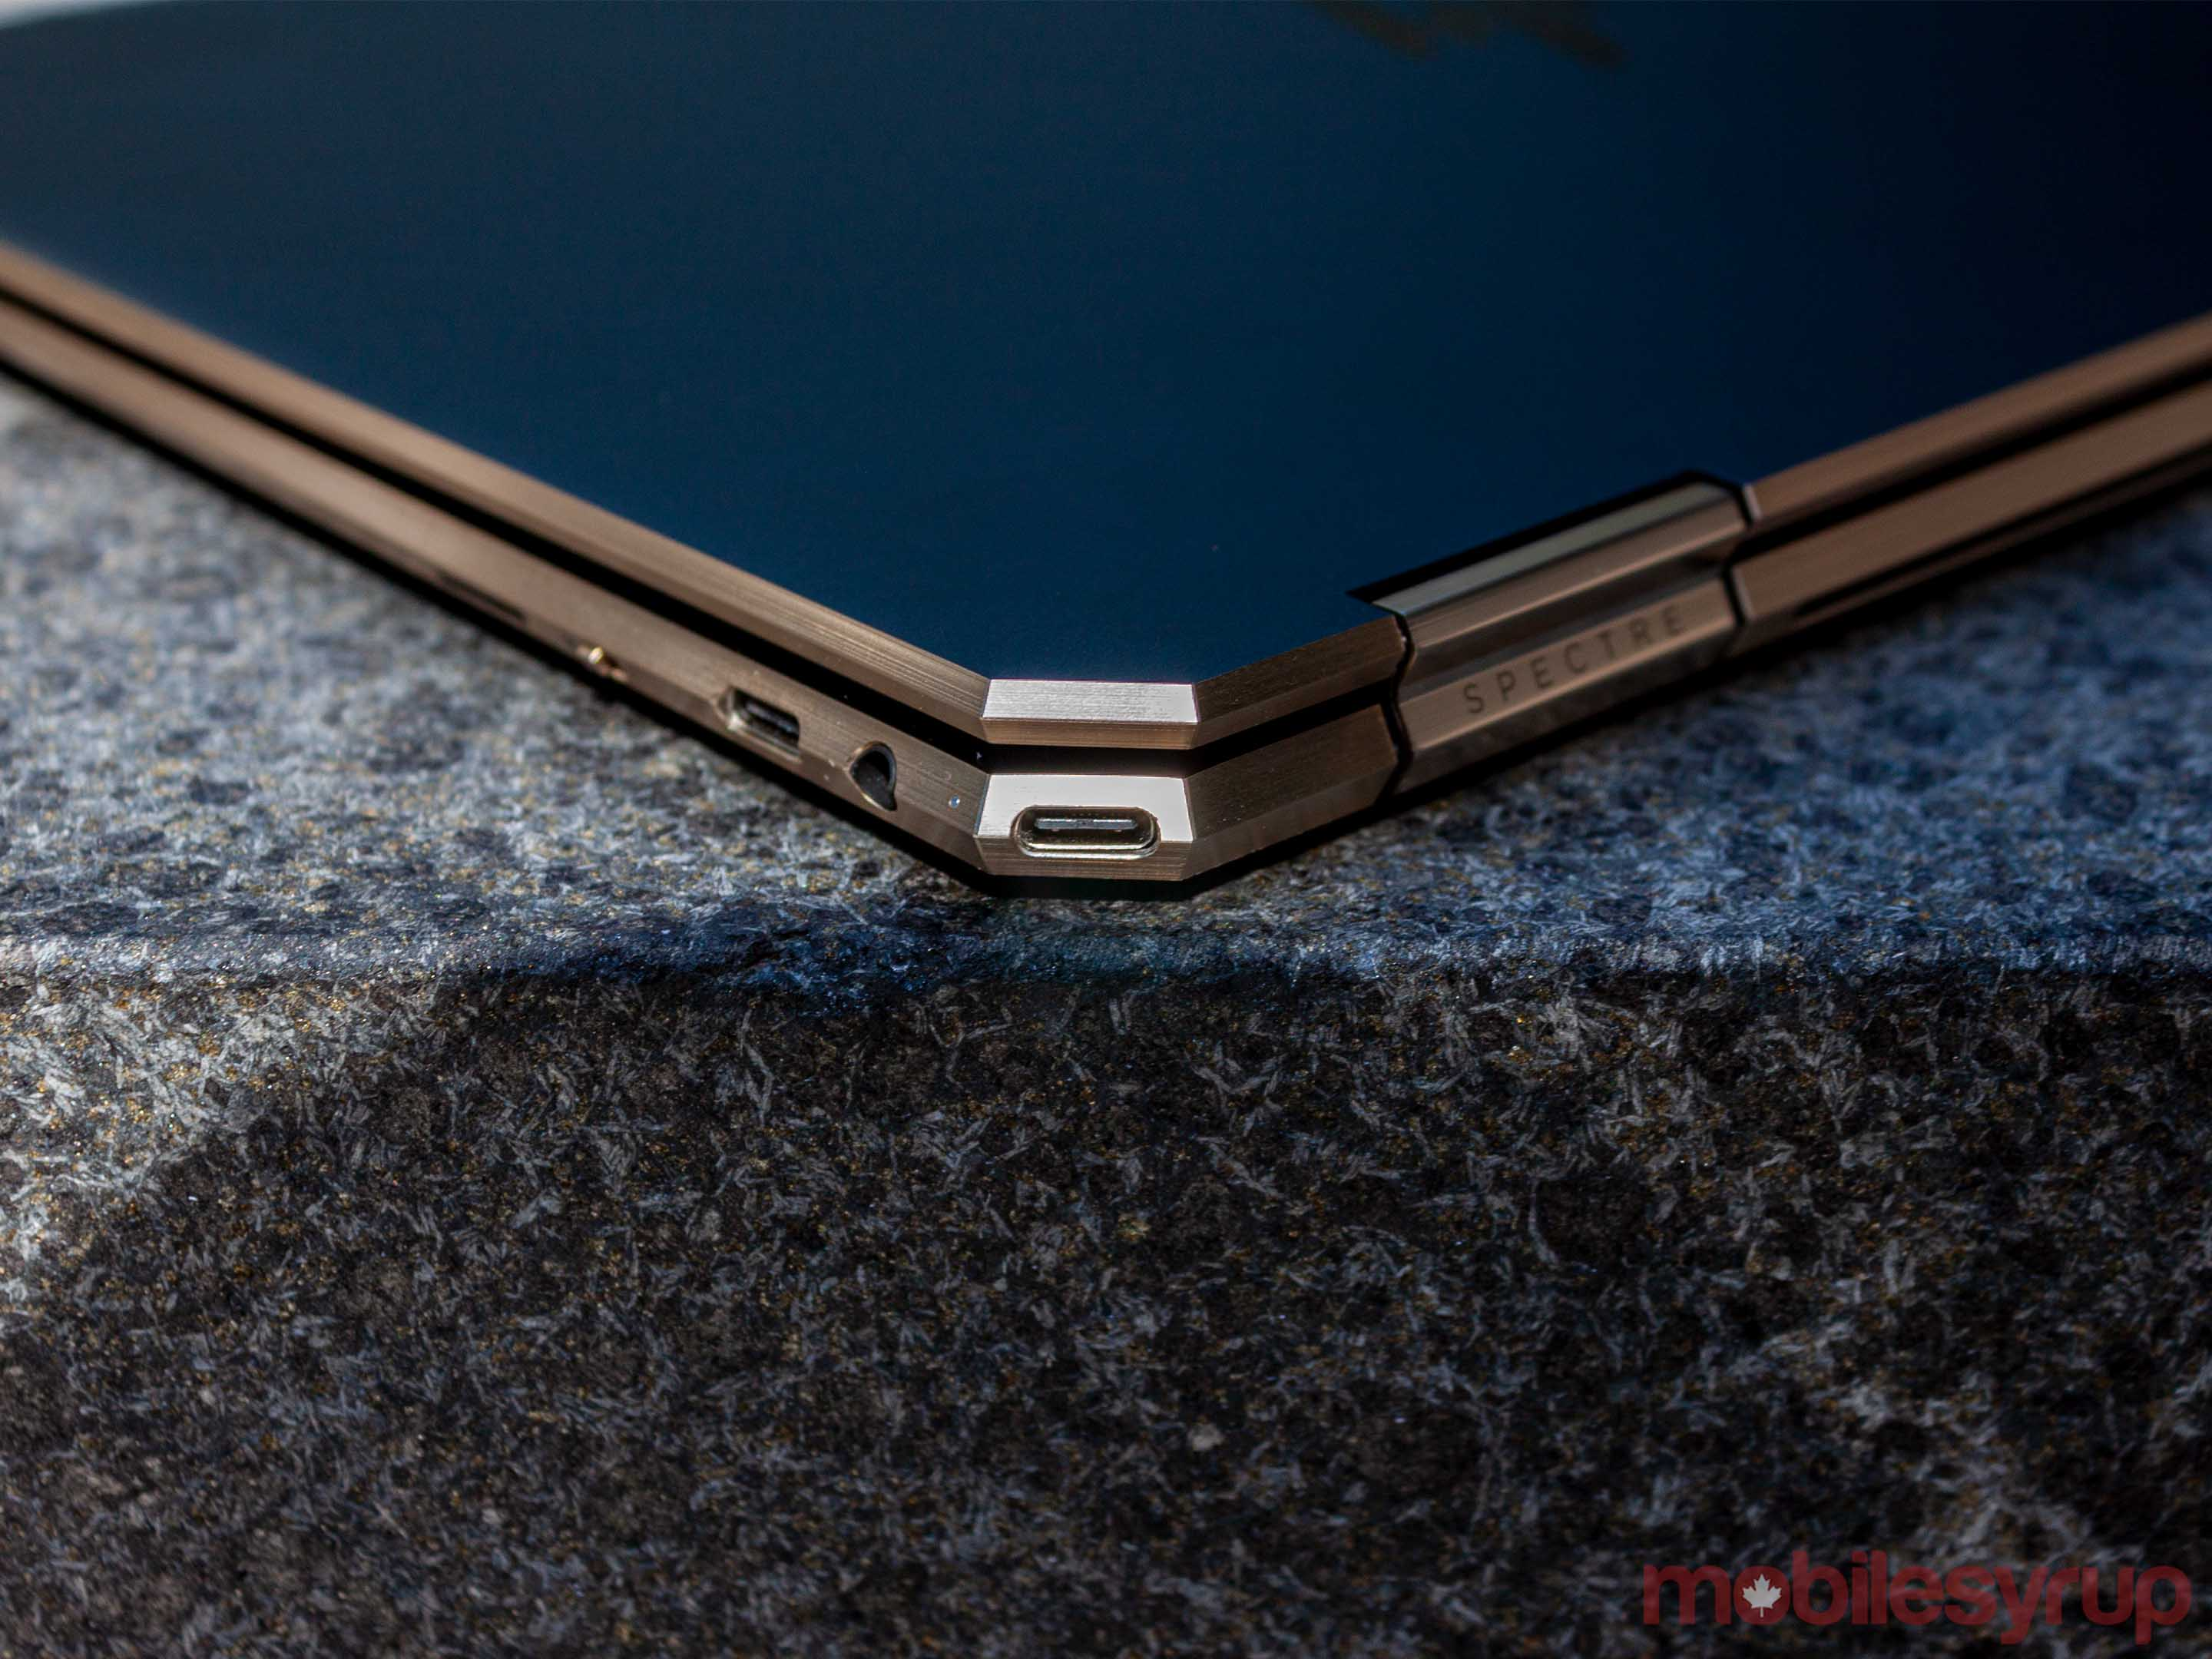 HP Spectre x360 Review: Where style meets power